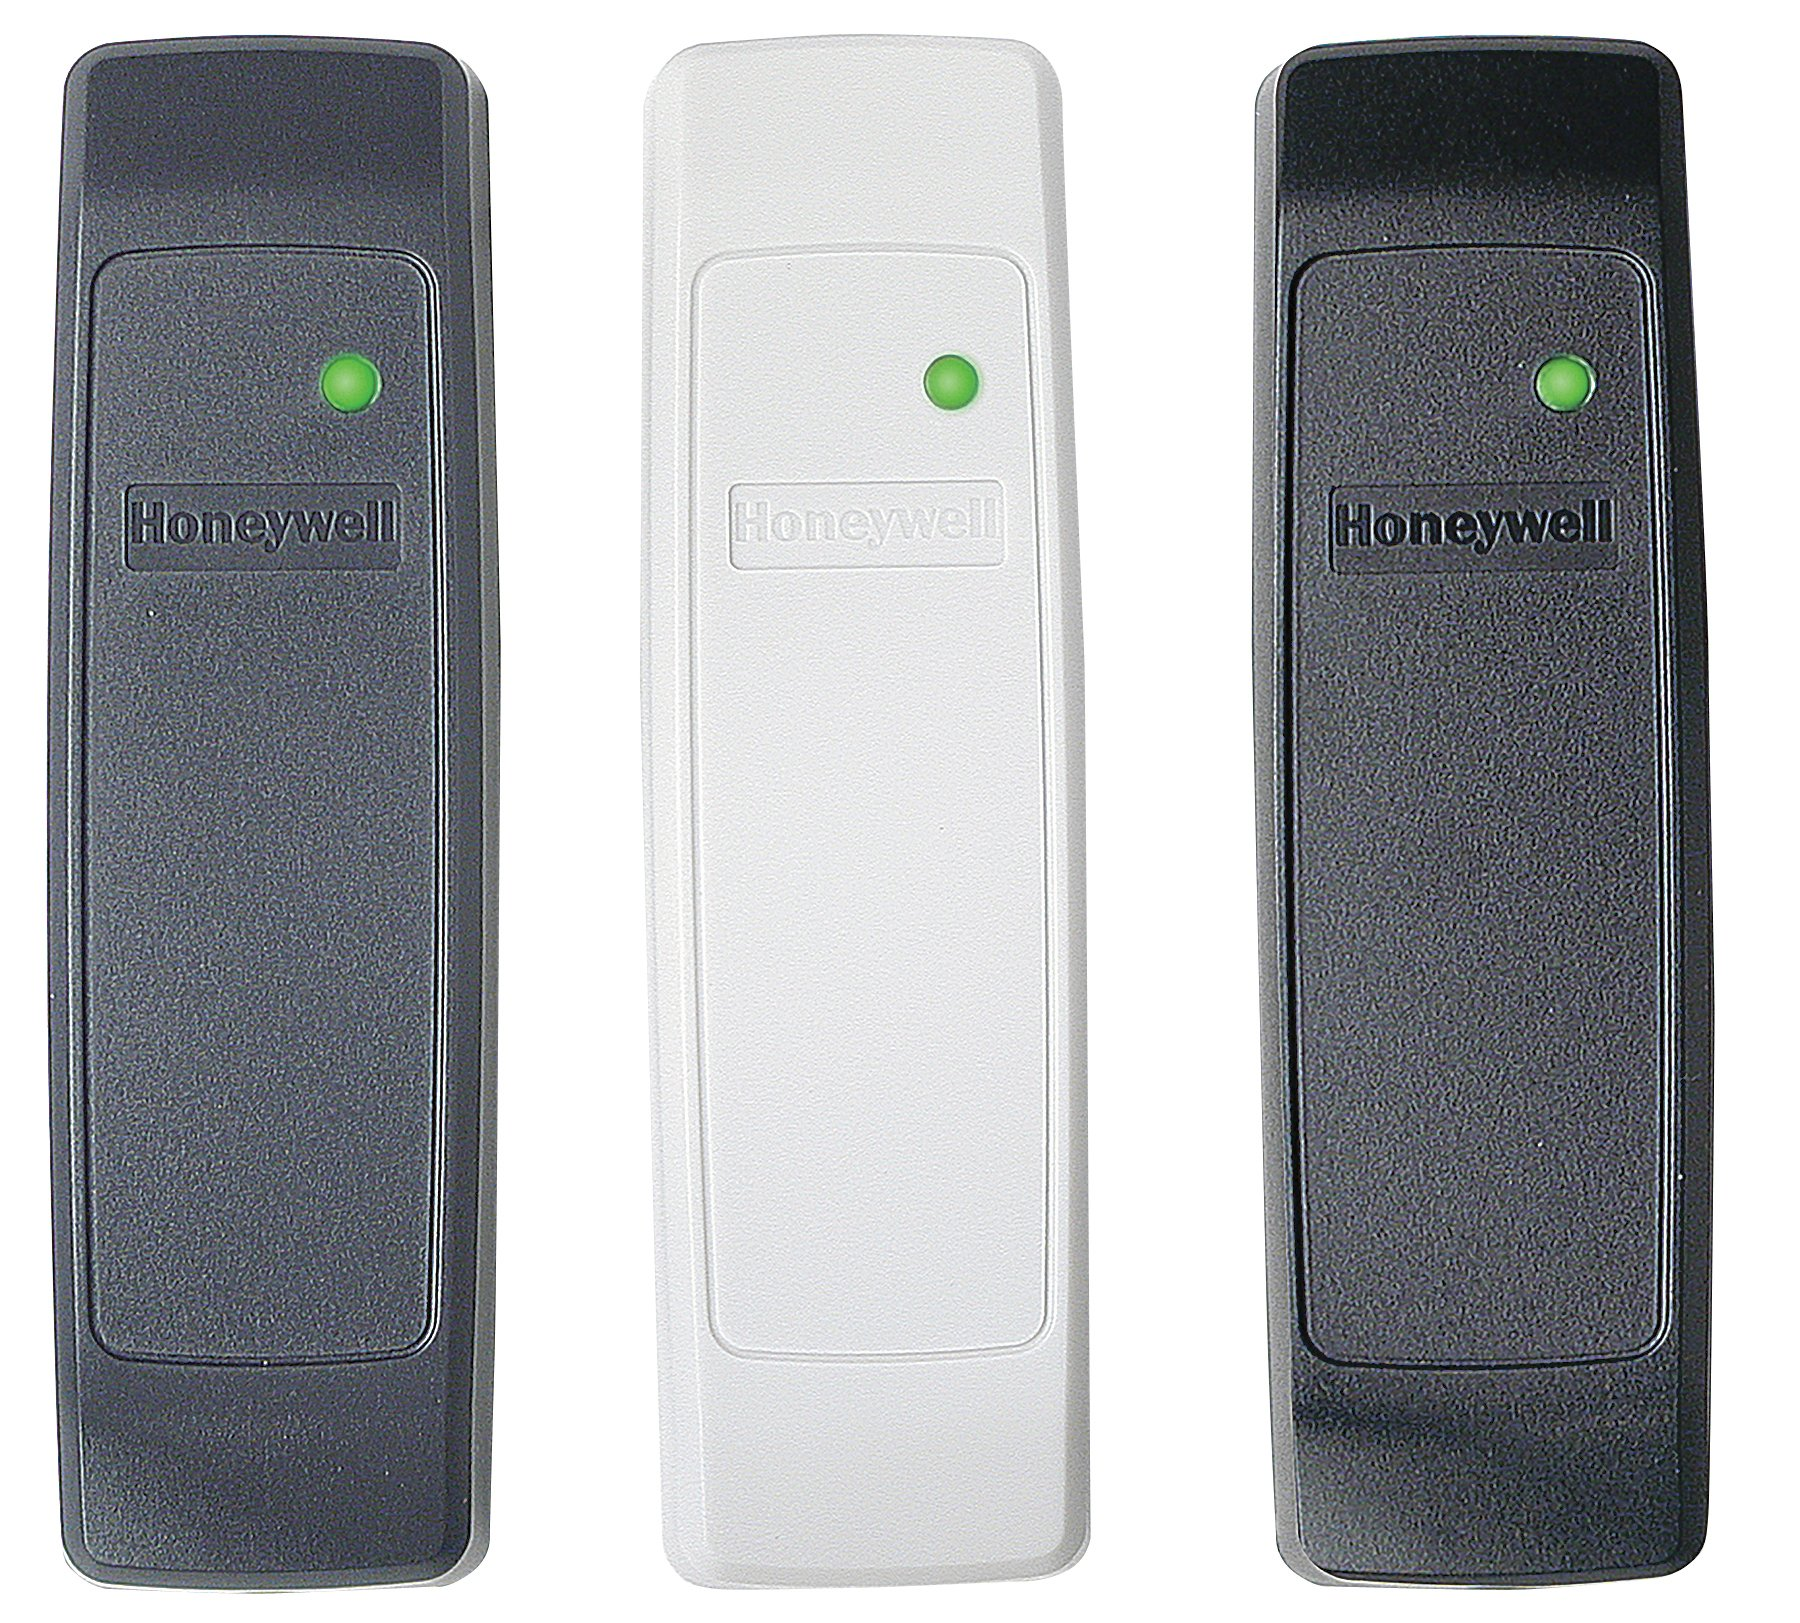 Honeywell Access Control